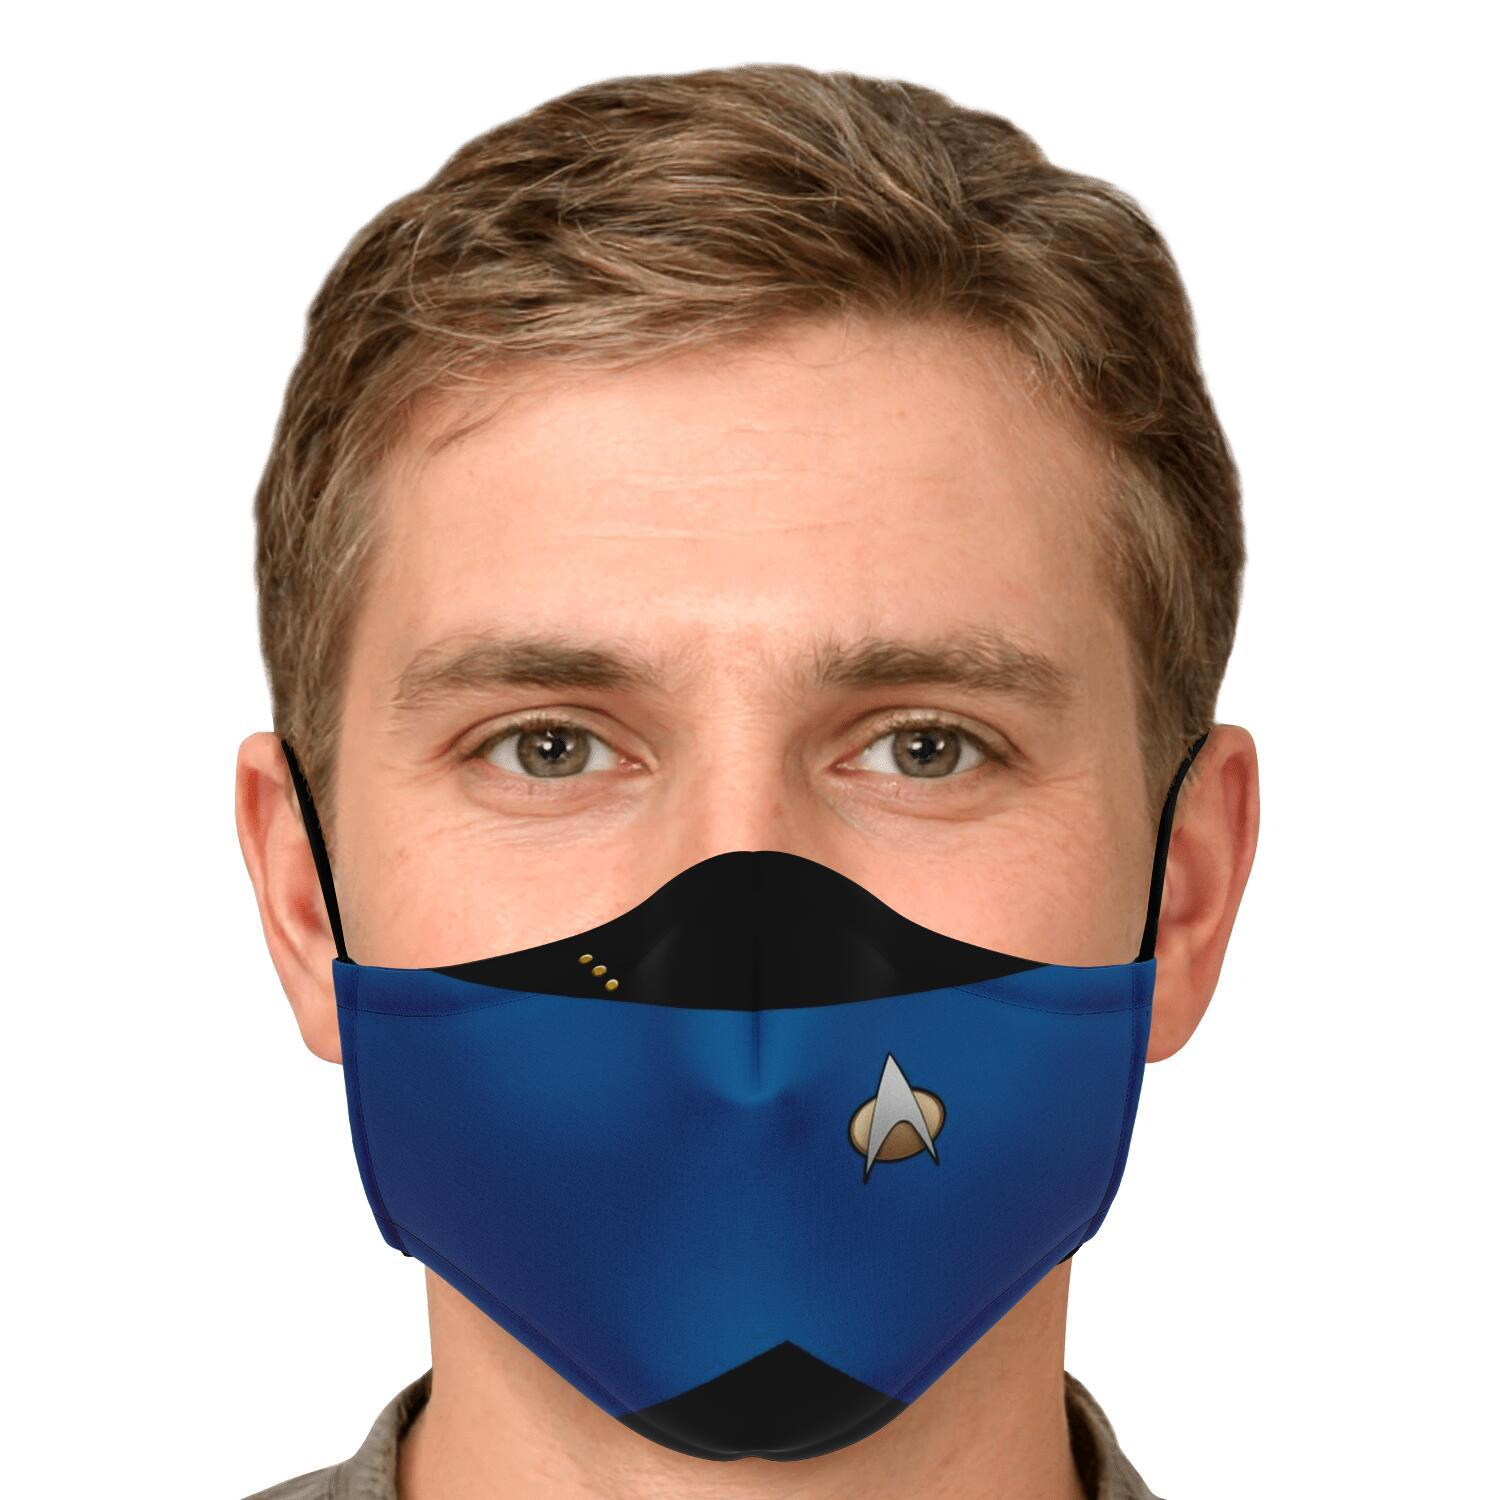 Star Trek Blue Shirt Face Mask 4